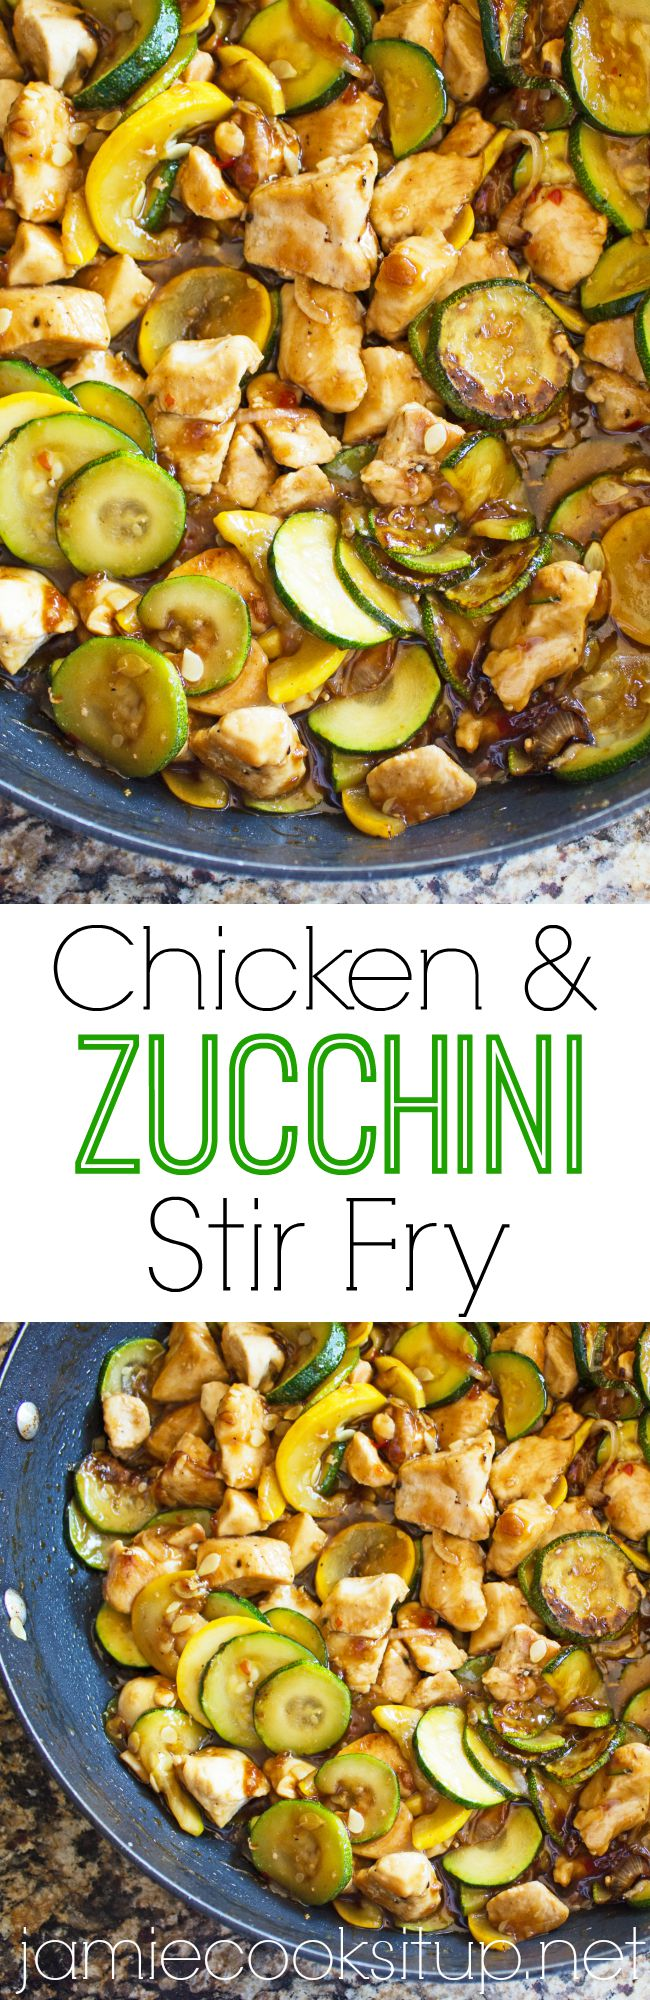 Chicken and Zucchini Stir Fry Jamie Cooks It Up!!